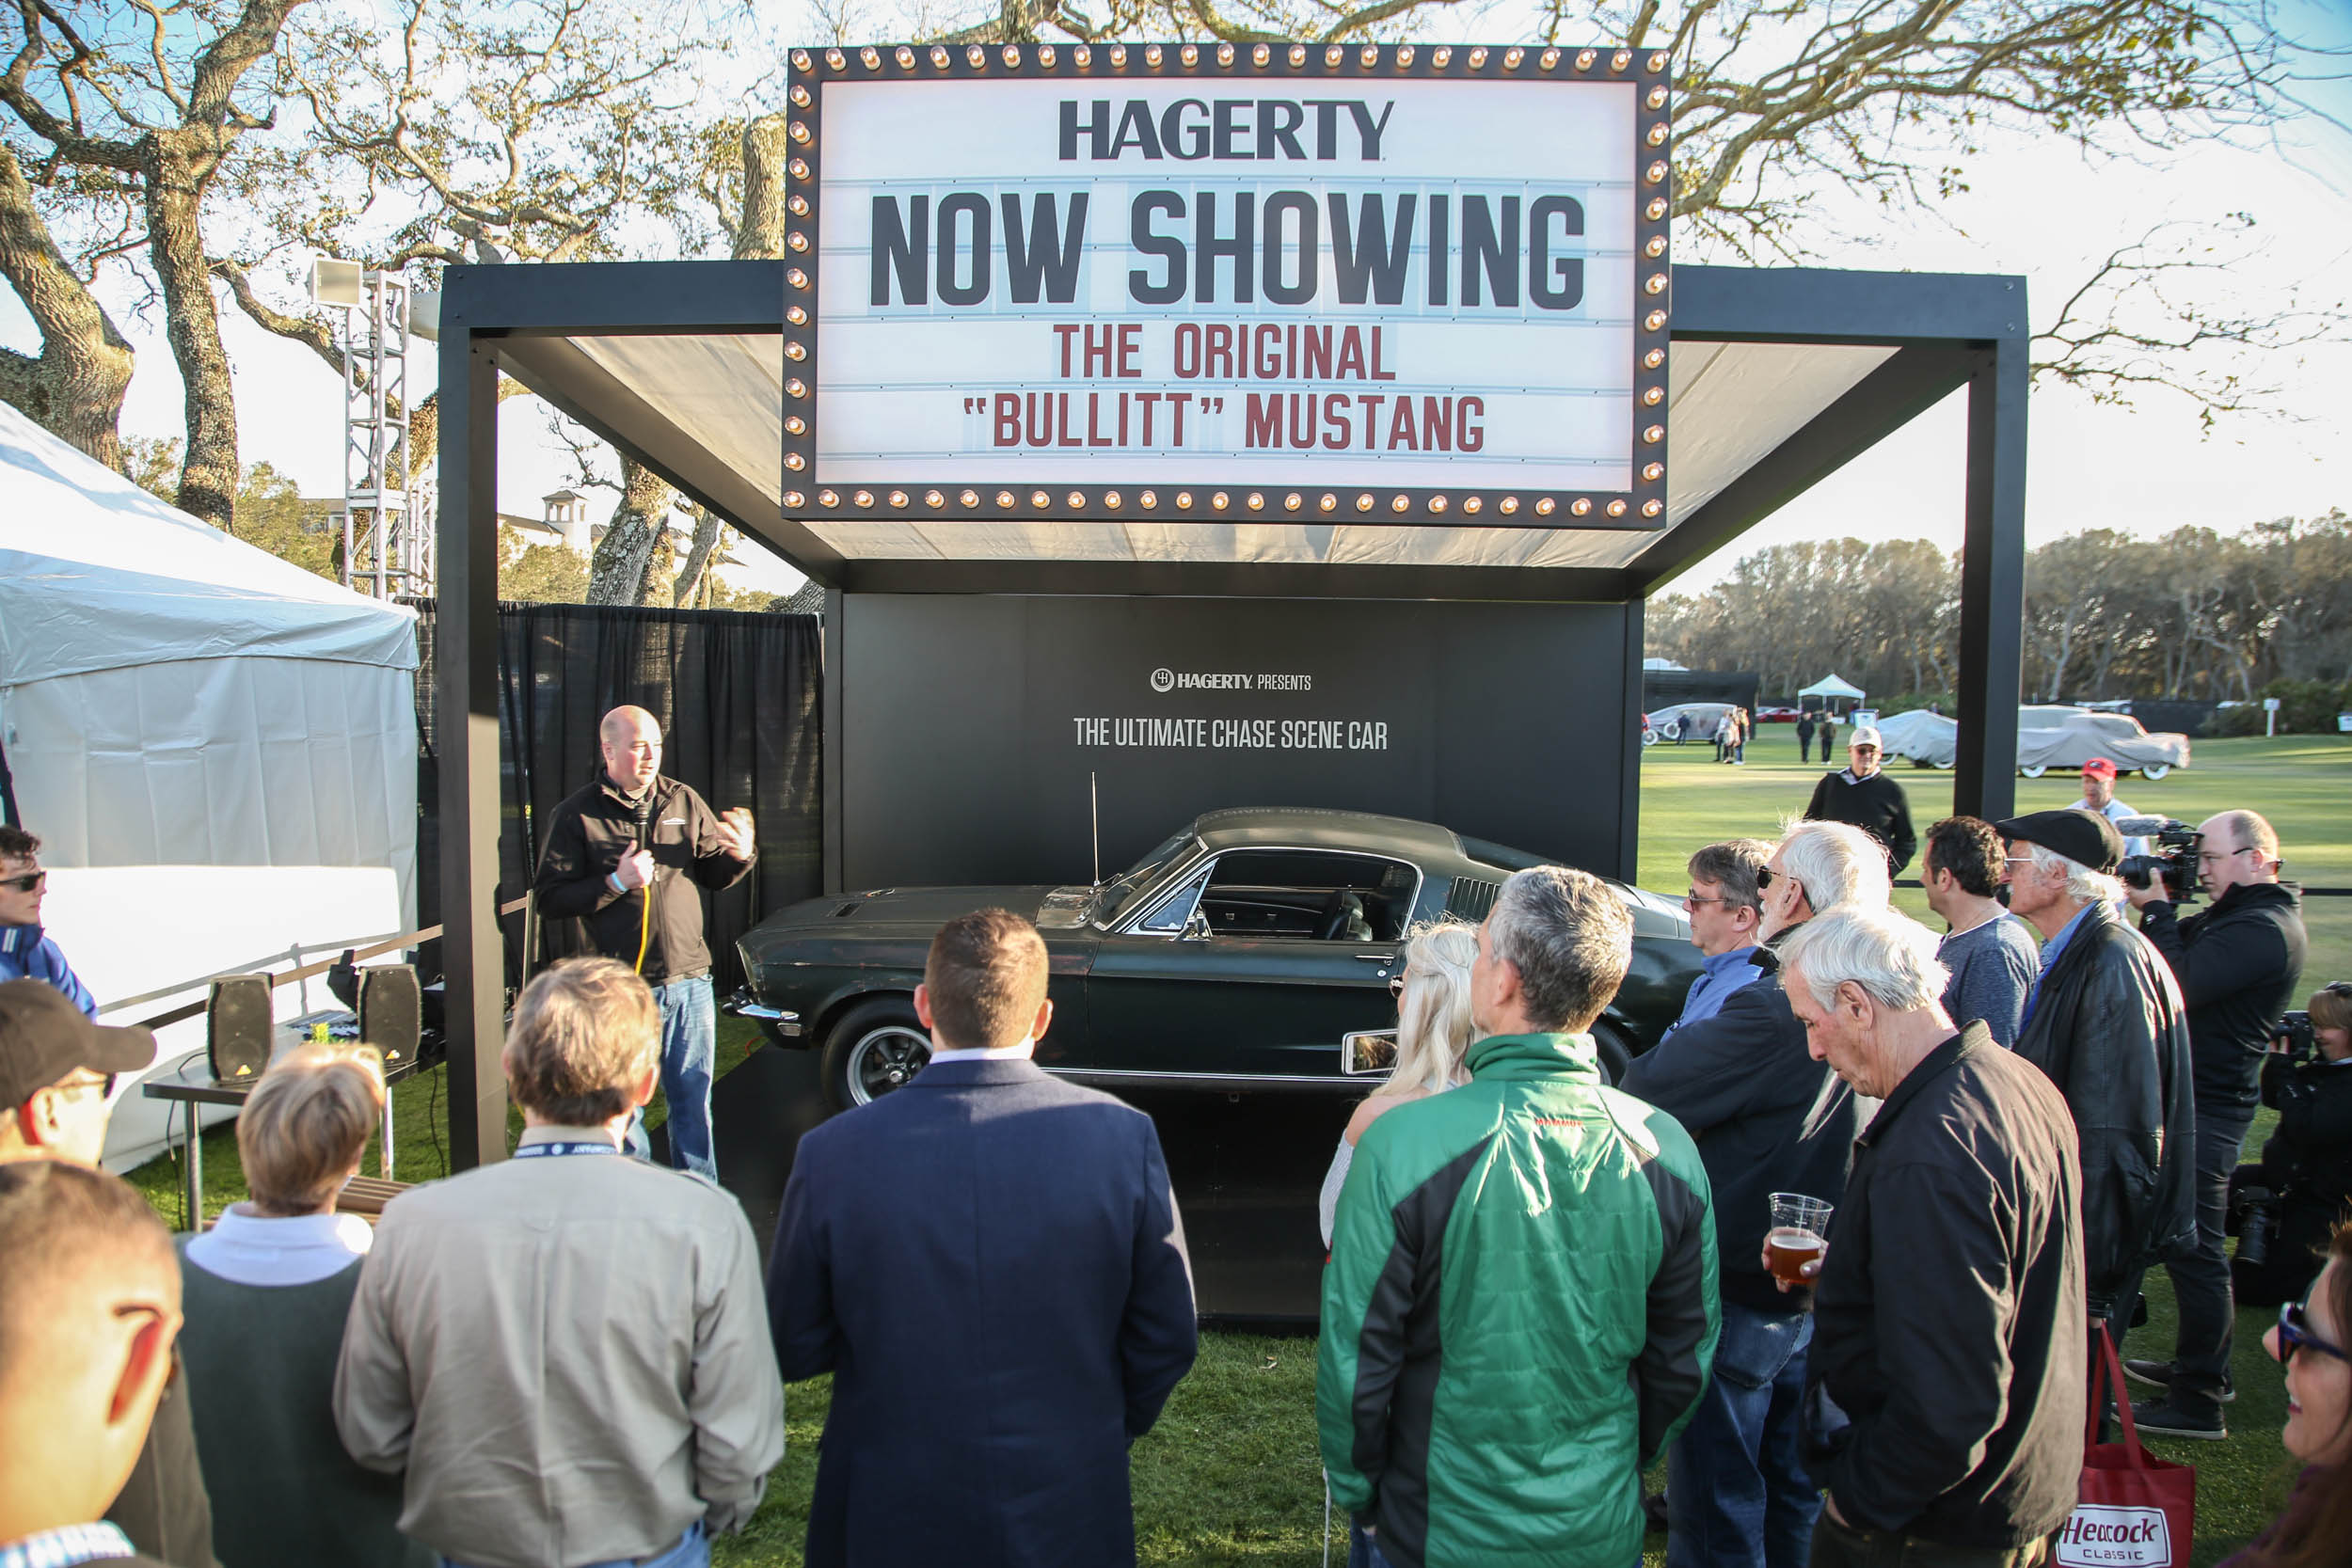 The Bullitt Mustang was on display in Hagerty's booth, where show-goers could get up close and snap a photo with an icon of American cultural history.